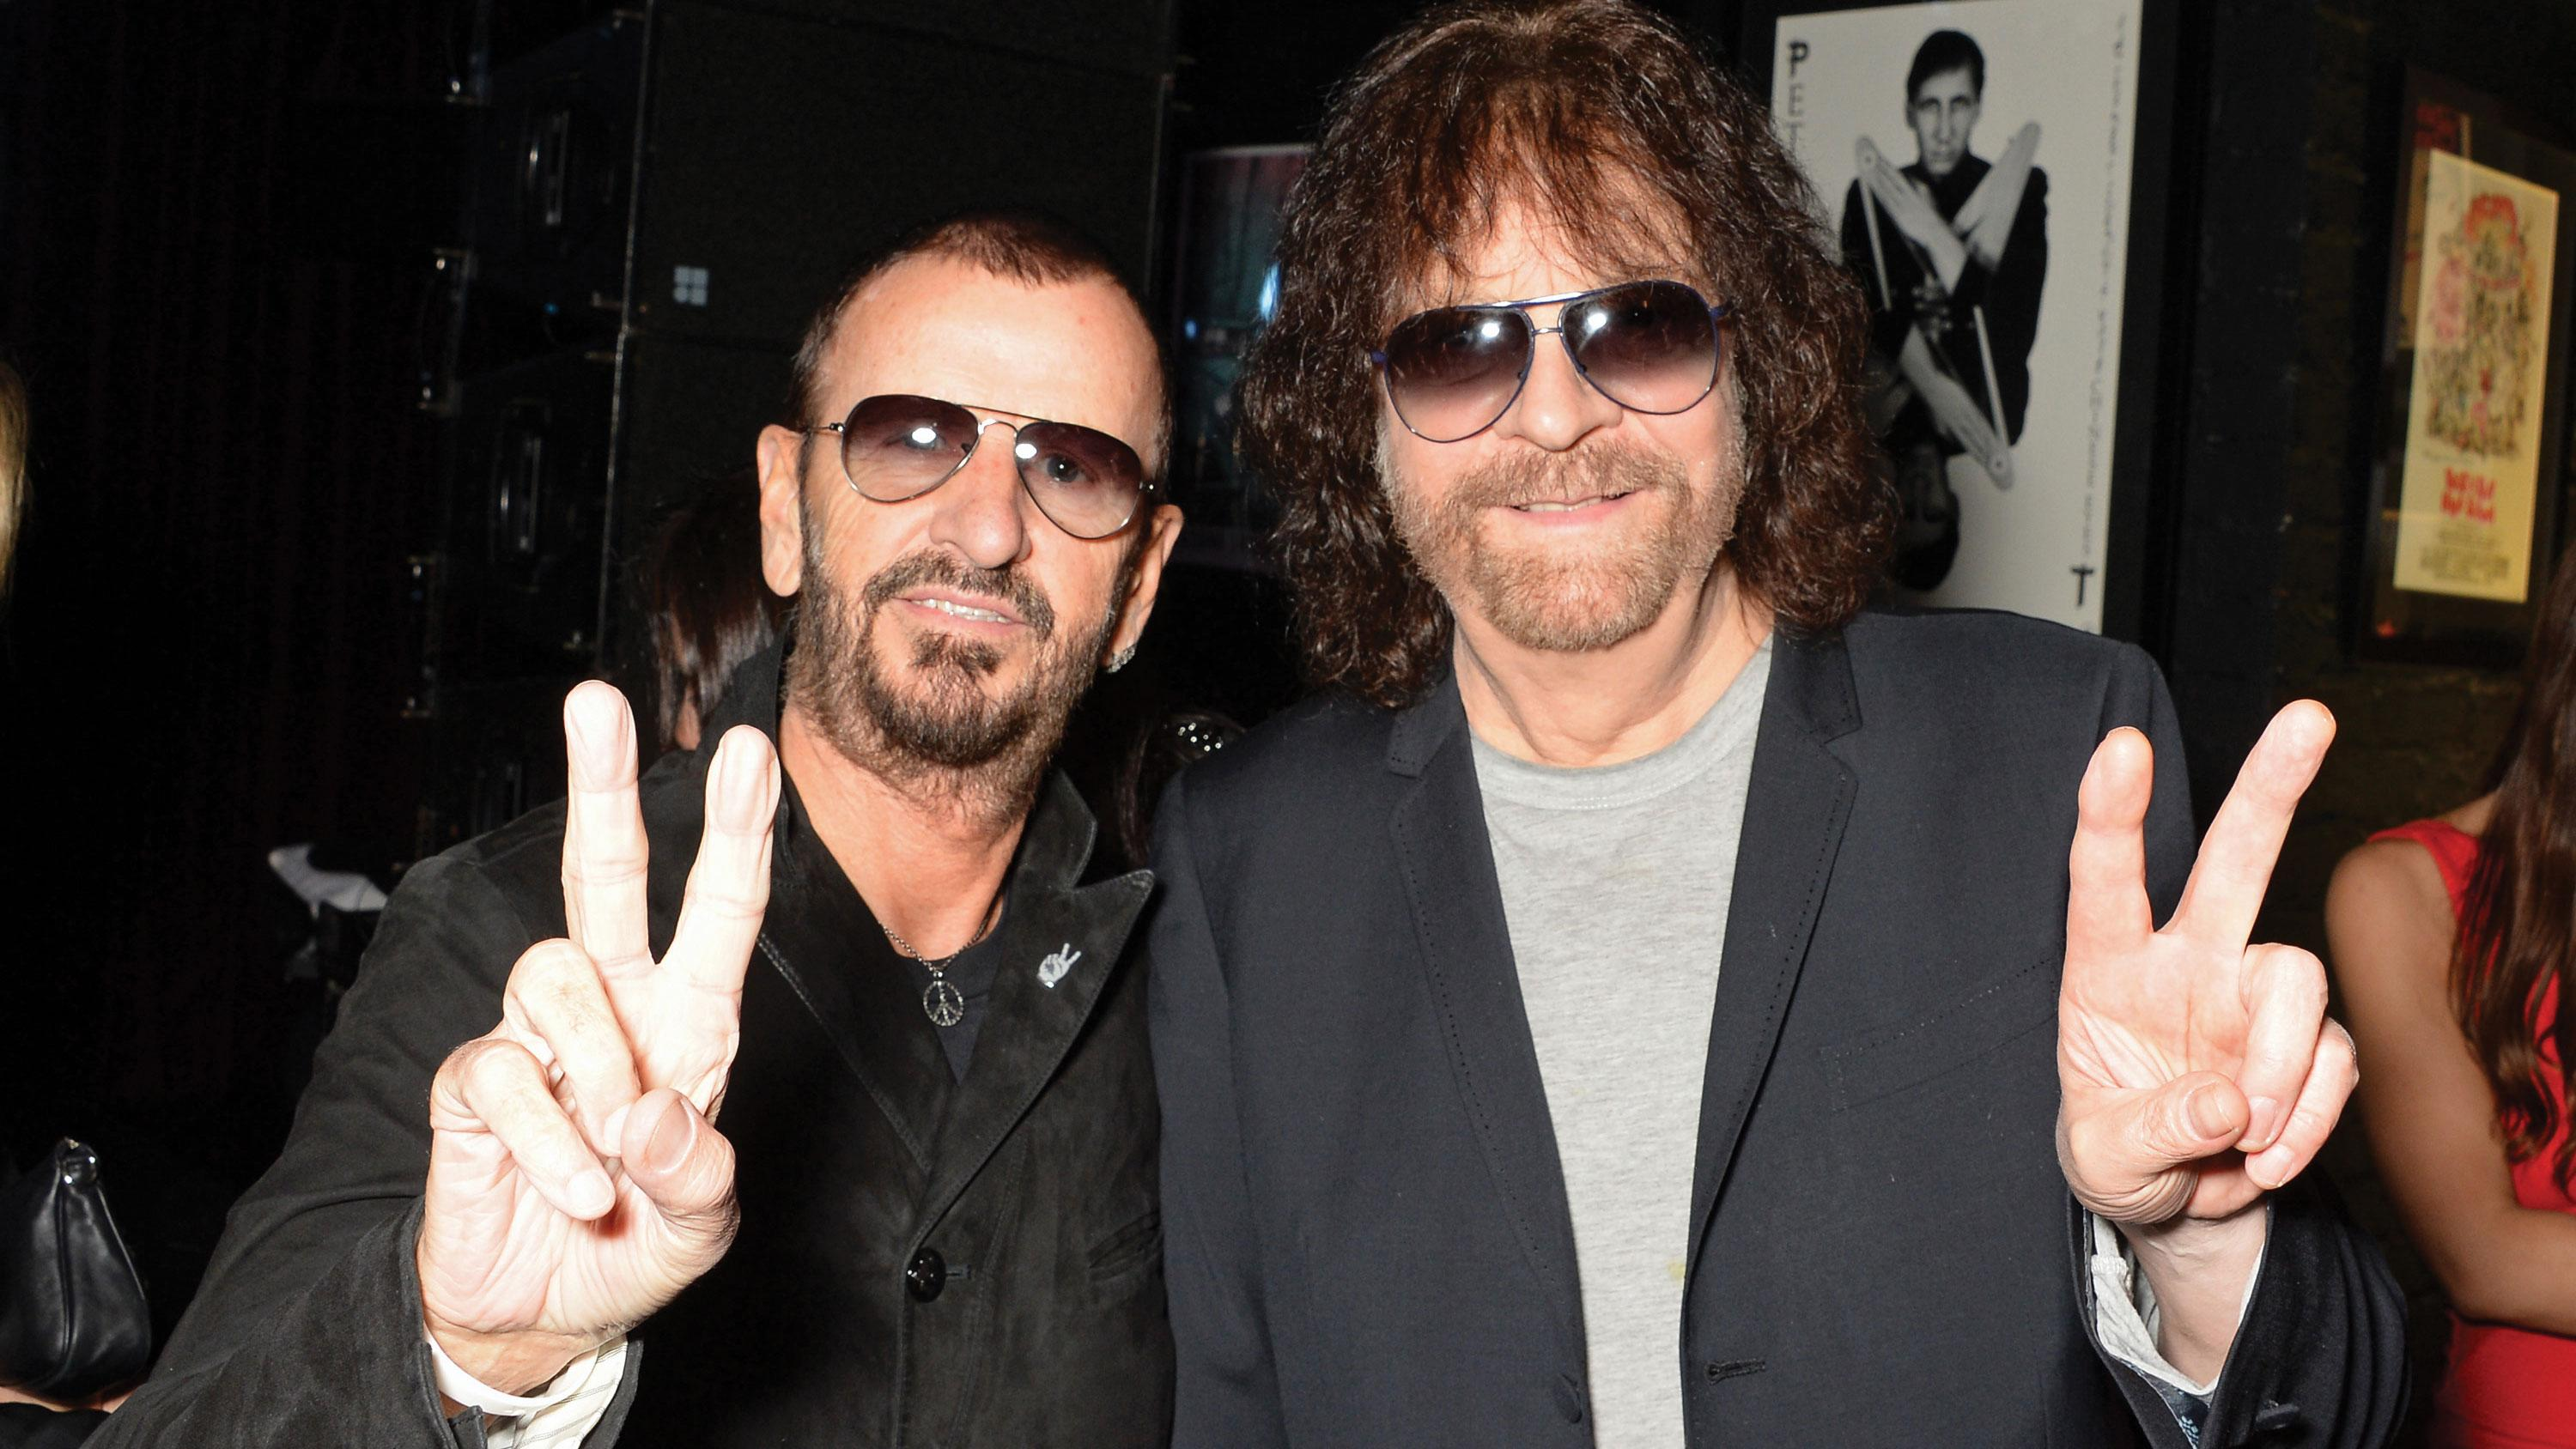 Jeff Lynne's Productions With the Beatles Rank With His Best Work